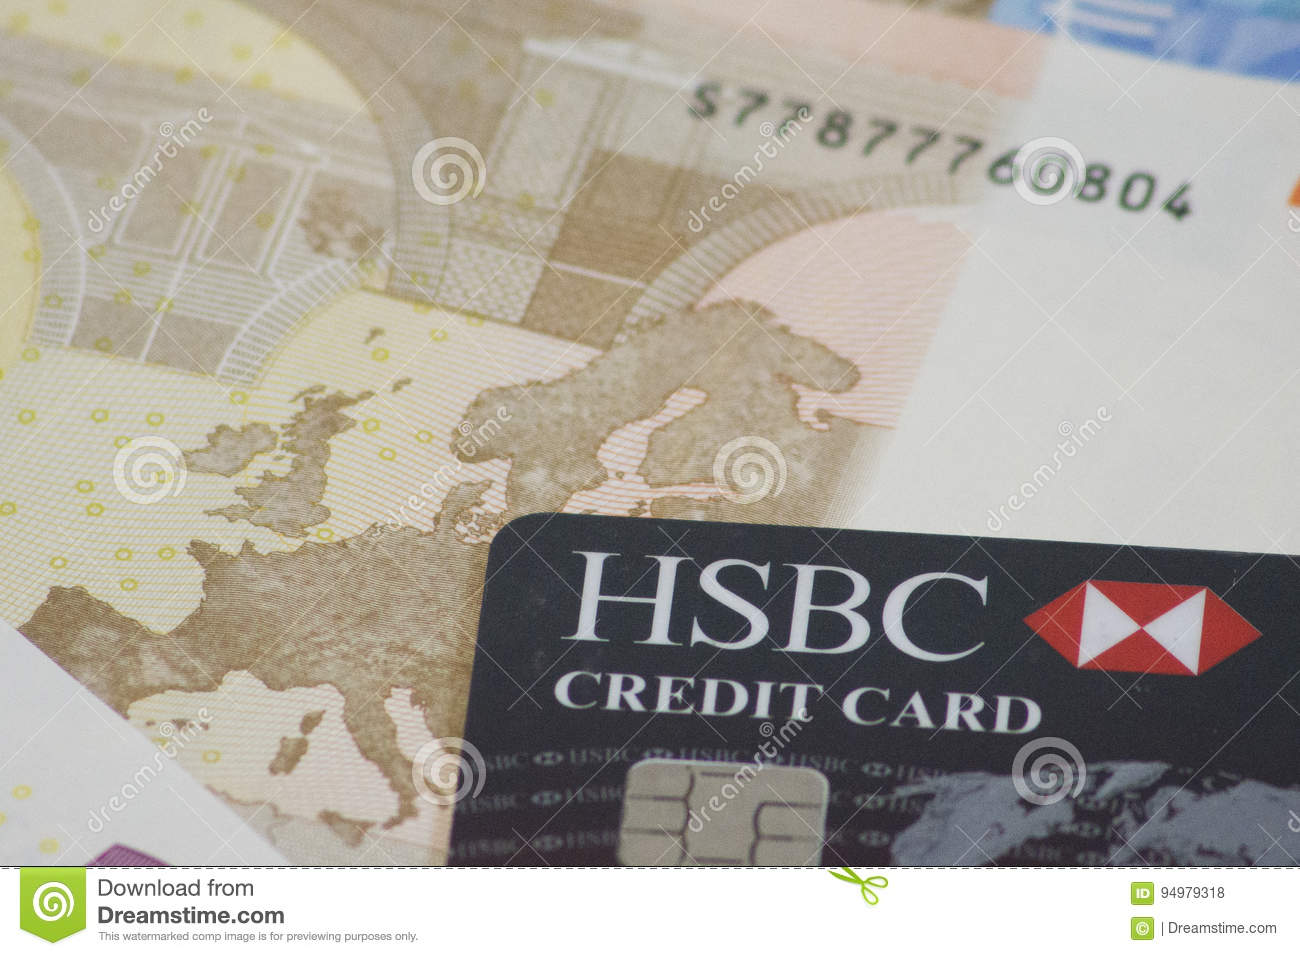 HSBC Credit Card On Euro Note Editorial Stock Photo - Image of